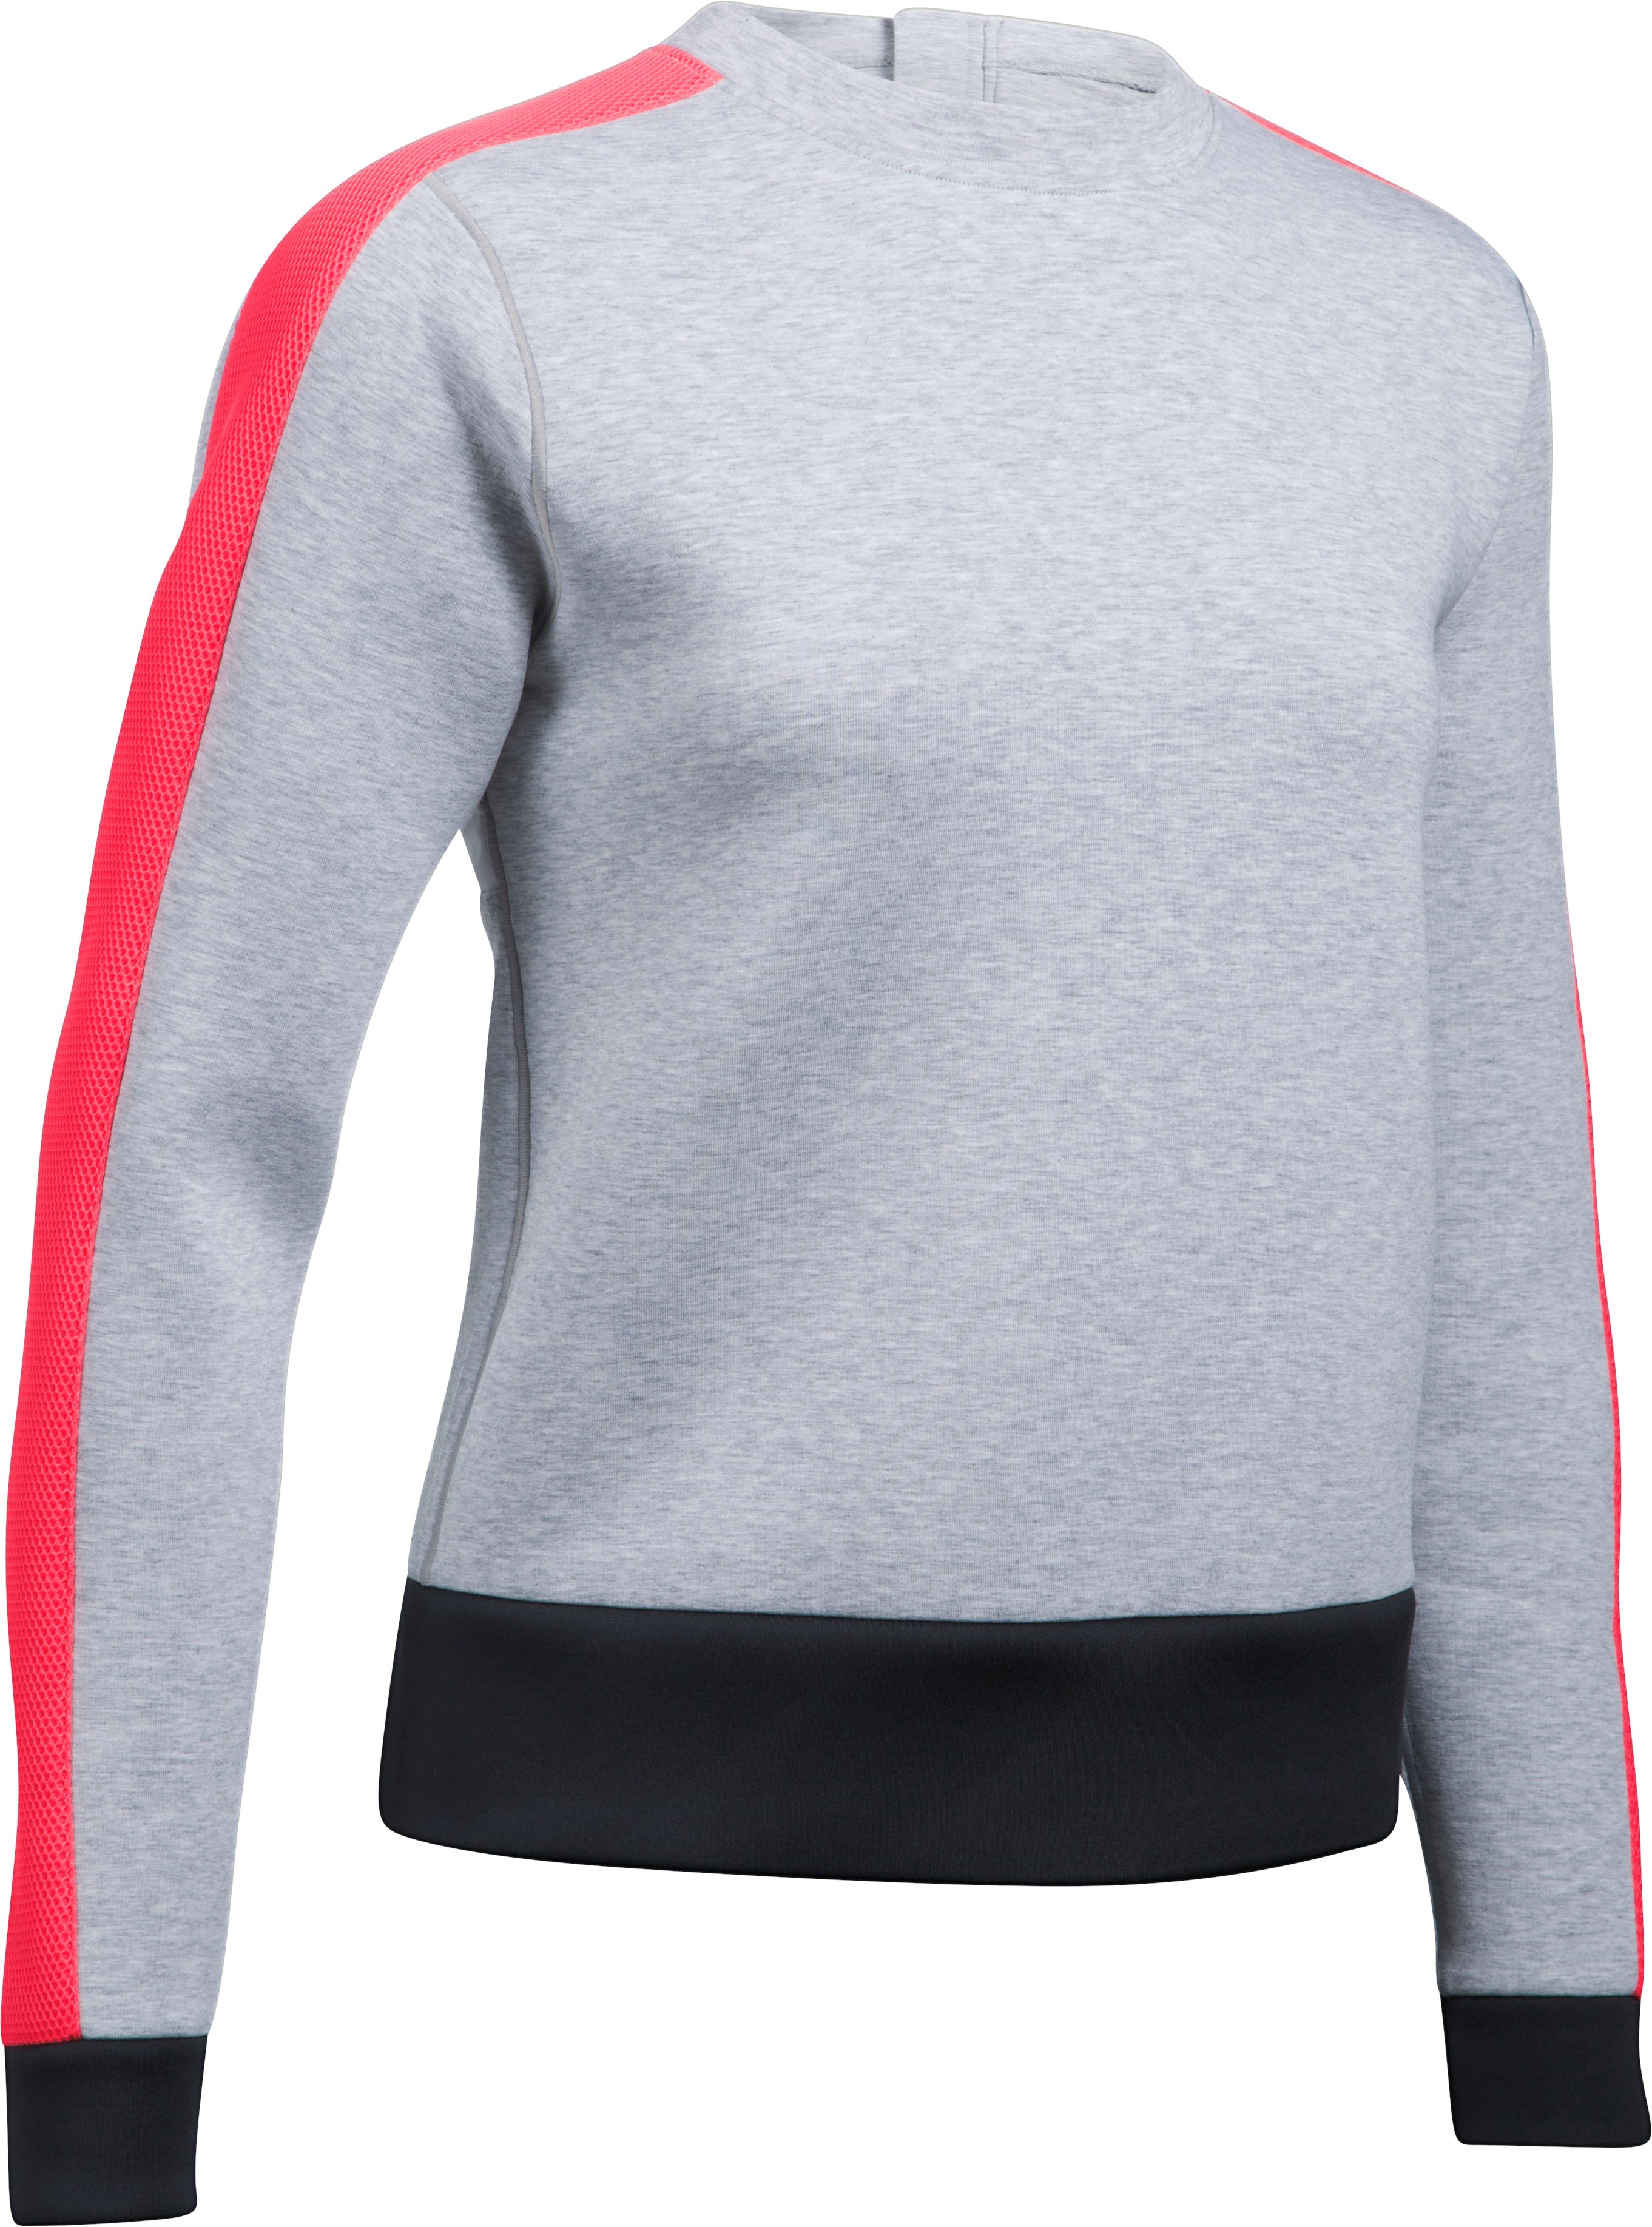 Women's UA Luster Long Sleeve Crew, AIR FORCE GRAY HEATHER, undefined